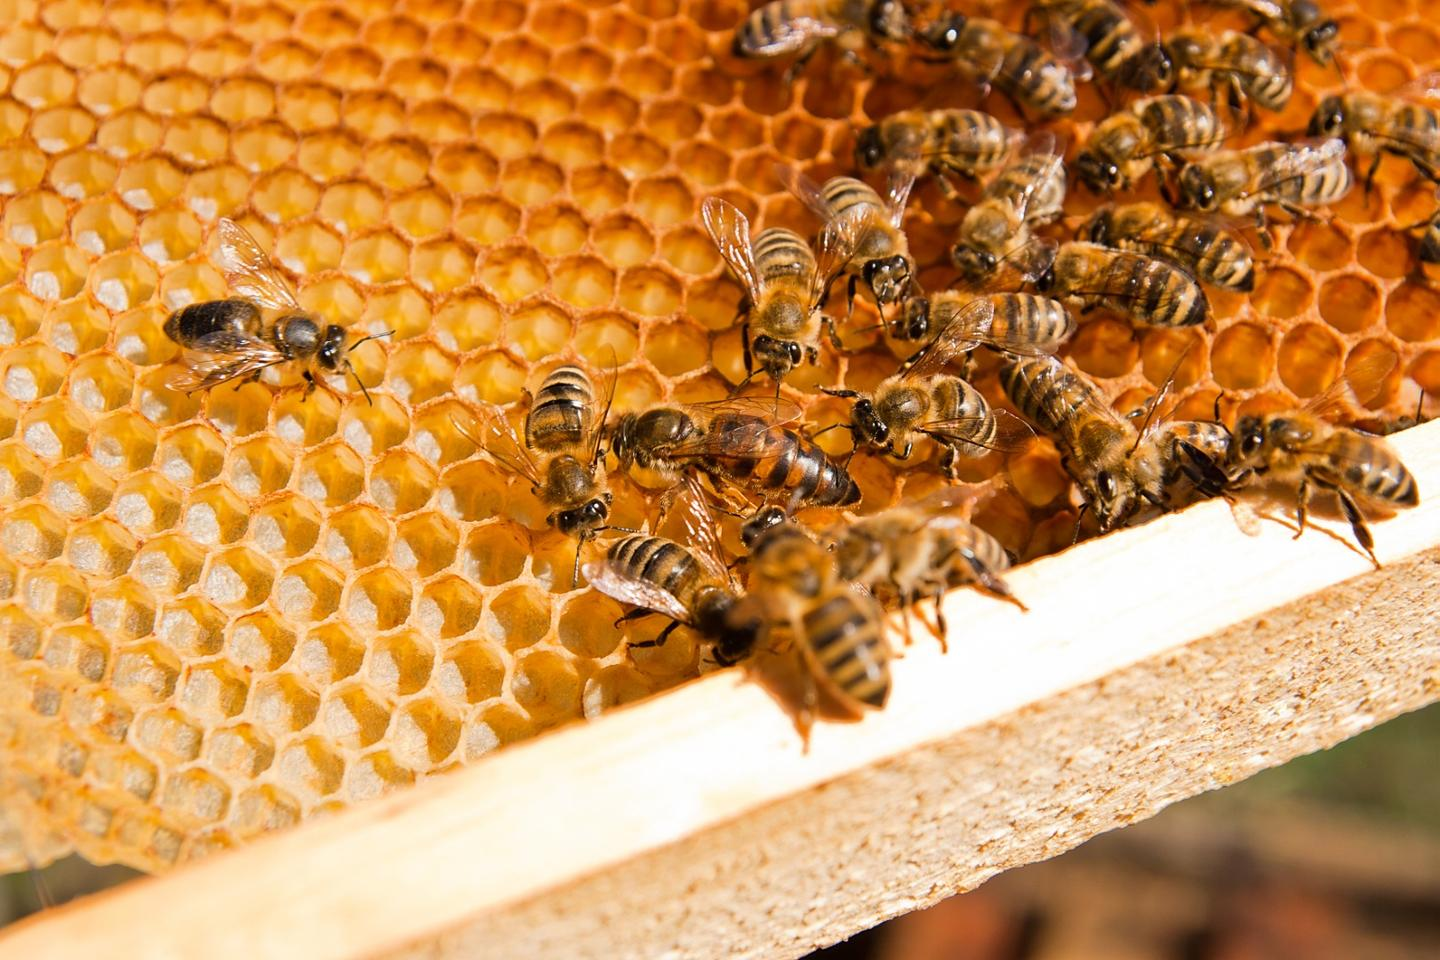 Research into the royal jelly secreted by bees as led scientists to a protein in humans that keeps stem cells in their embryonic state